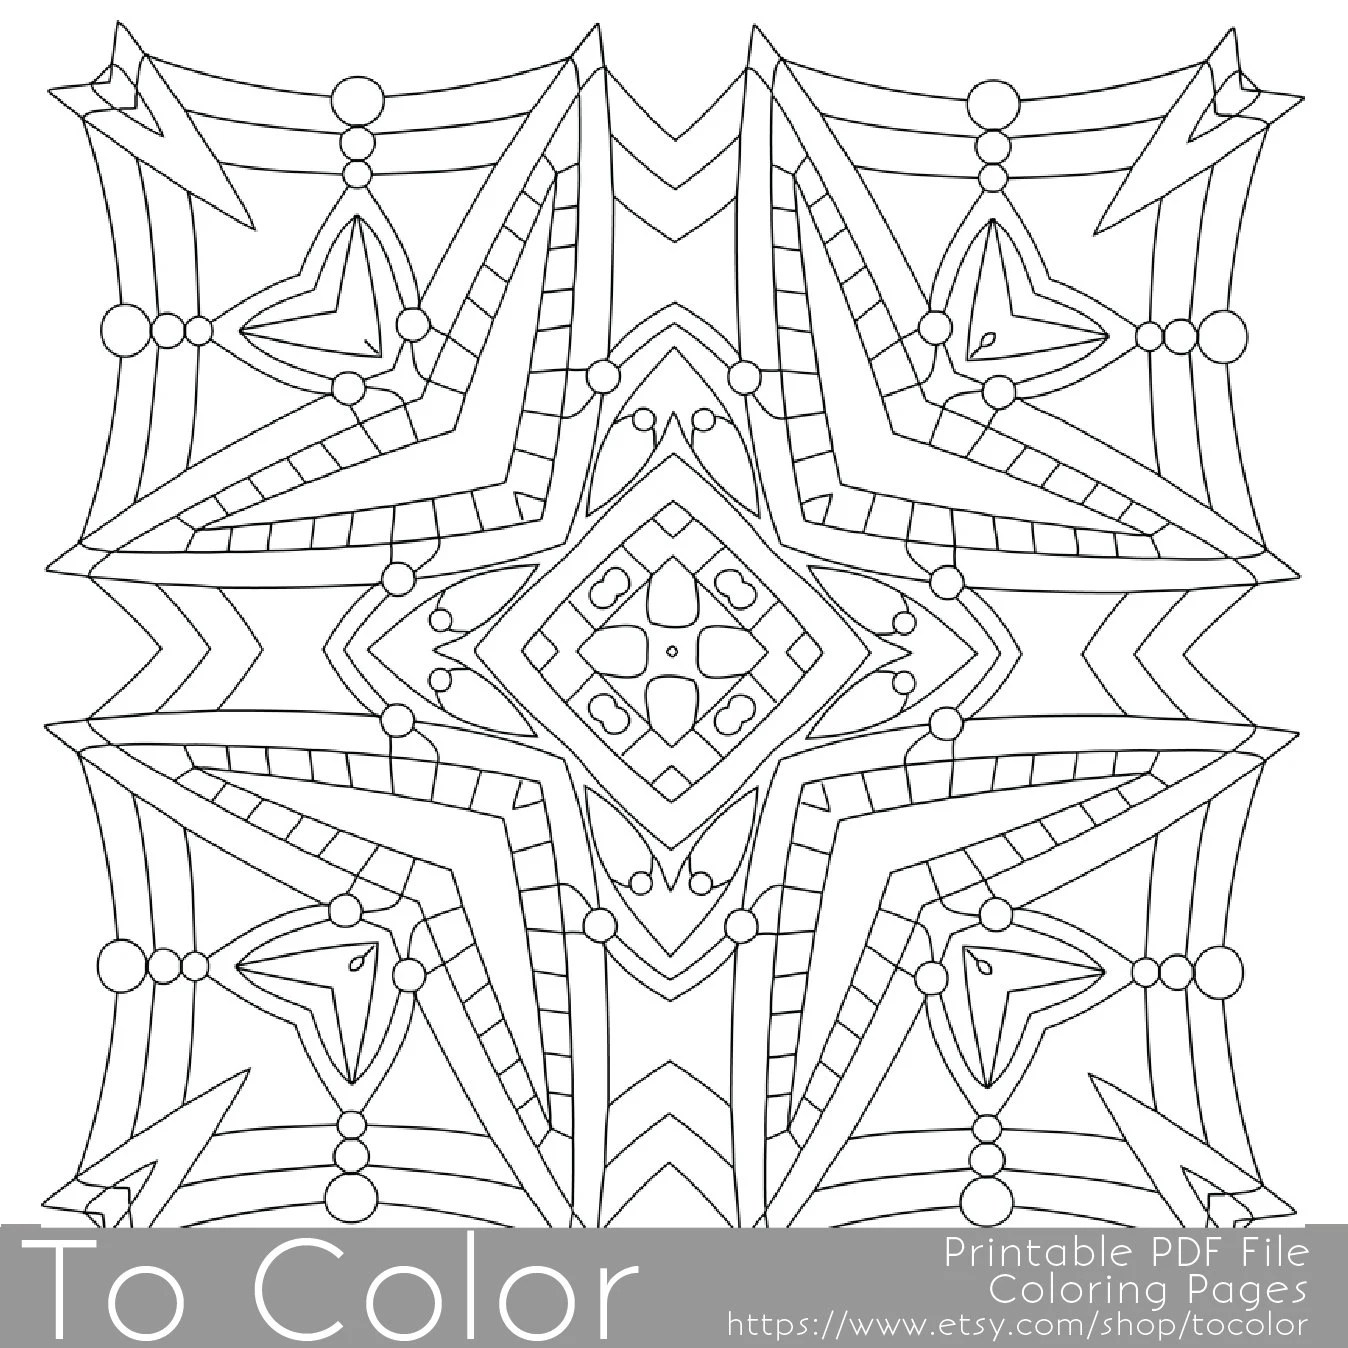 Items similar to Printable Square Mandala Coloring Pages